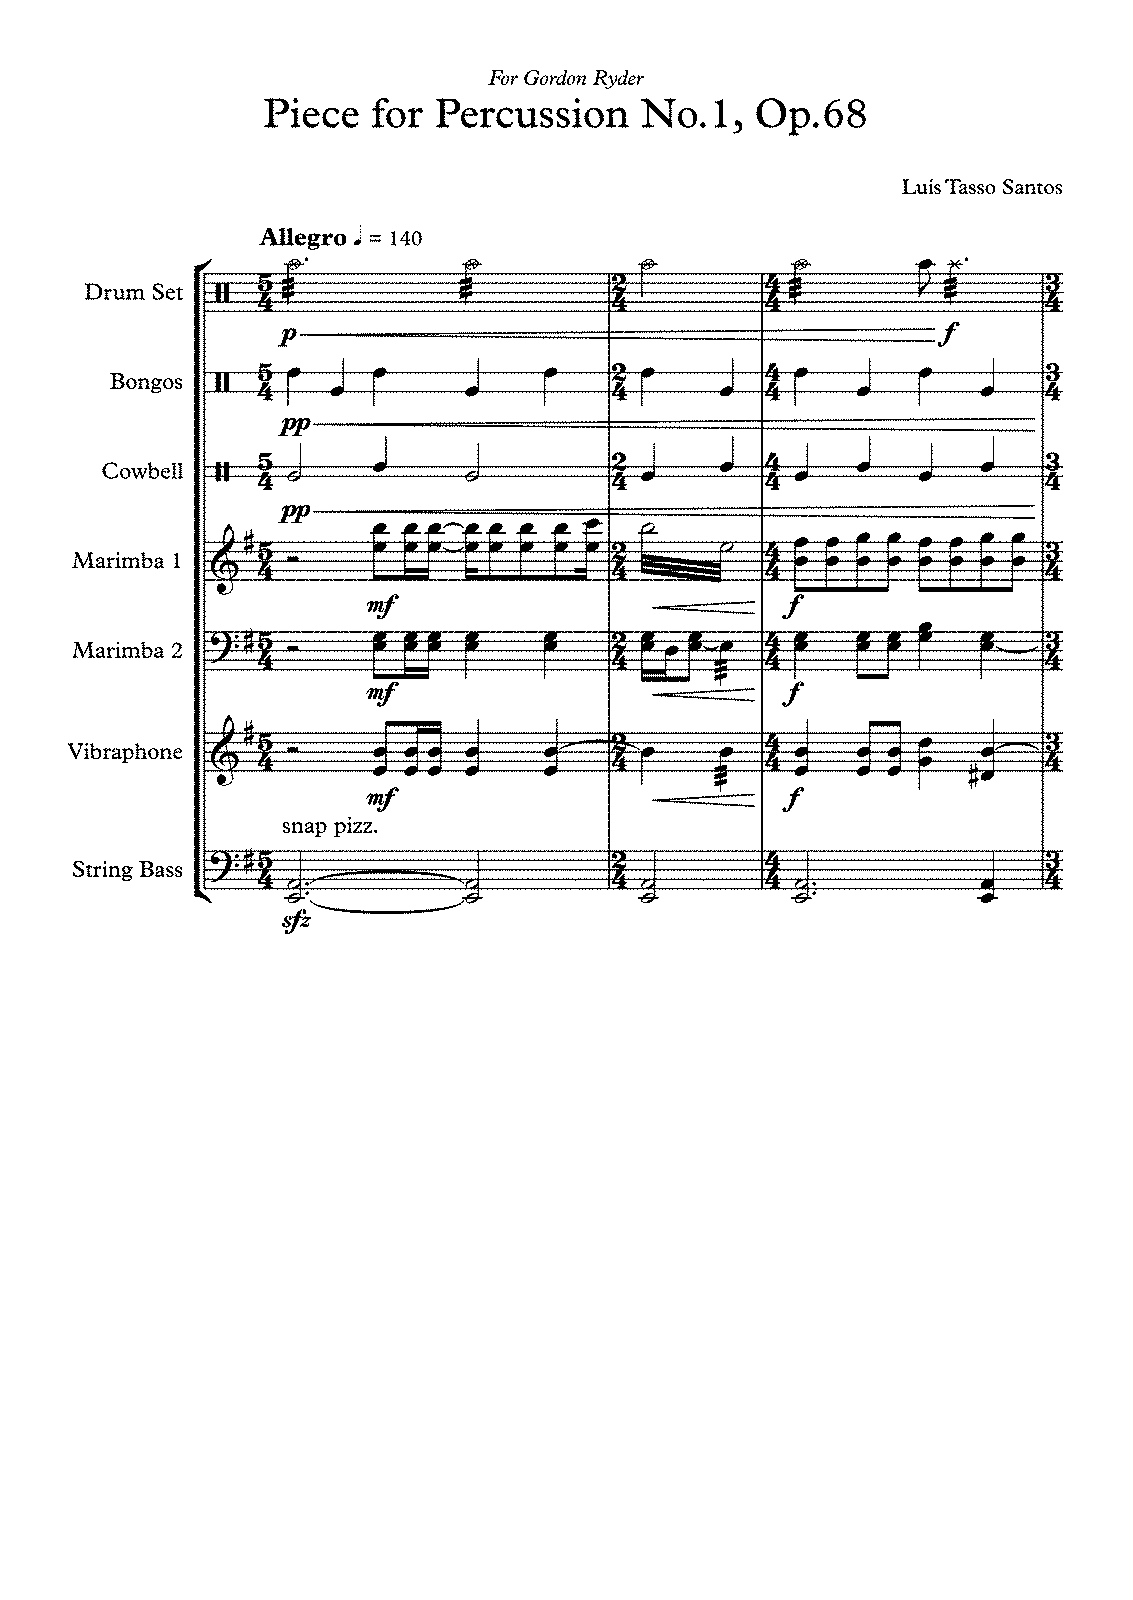 PMLP481608-Piece for Percussion No 1, Op 68 - Full Score.pdf